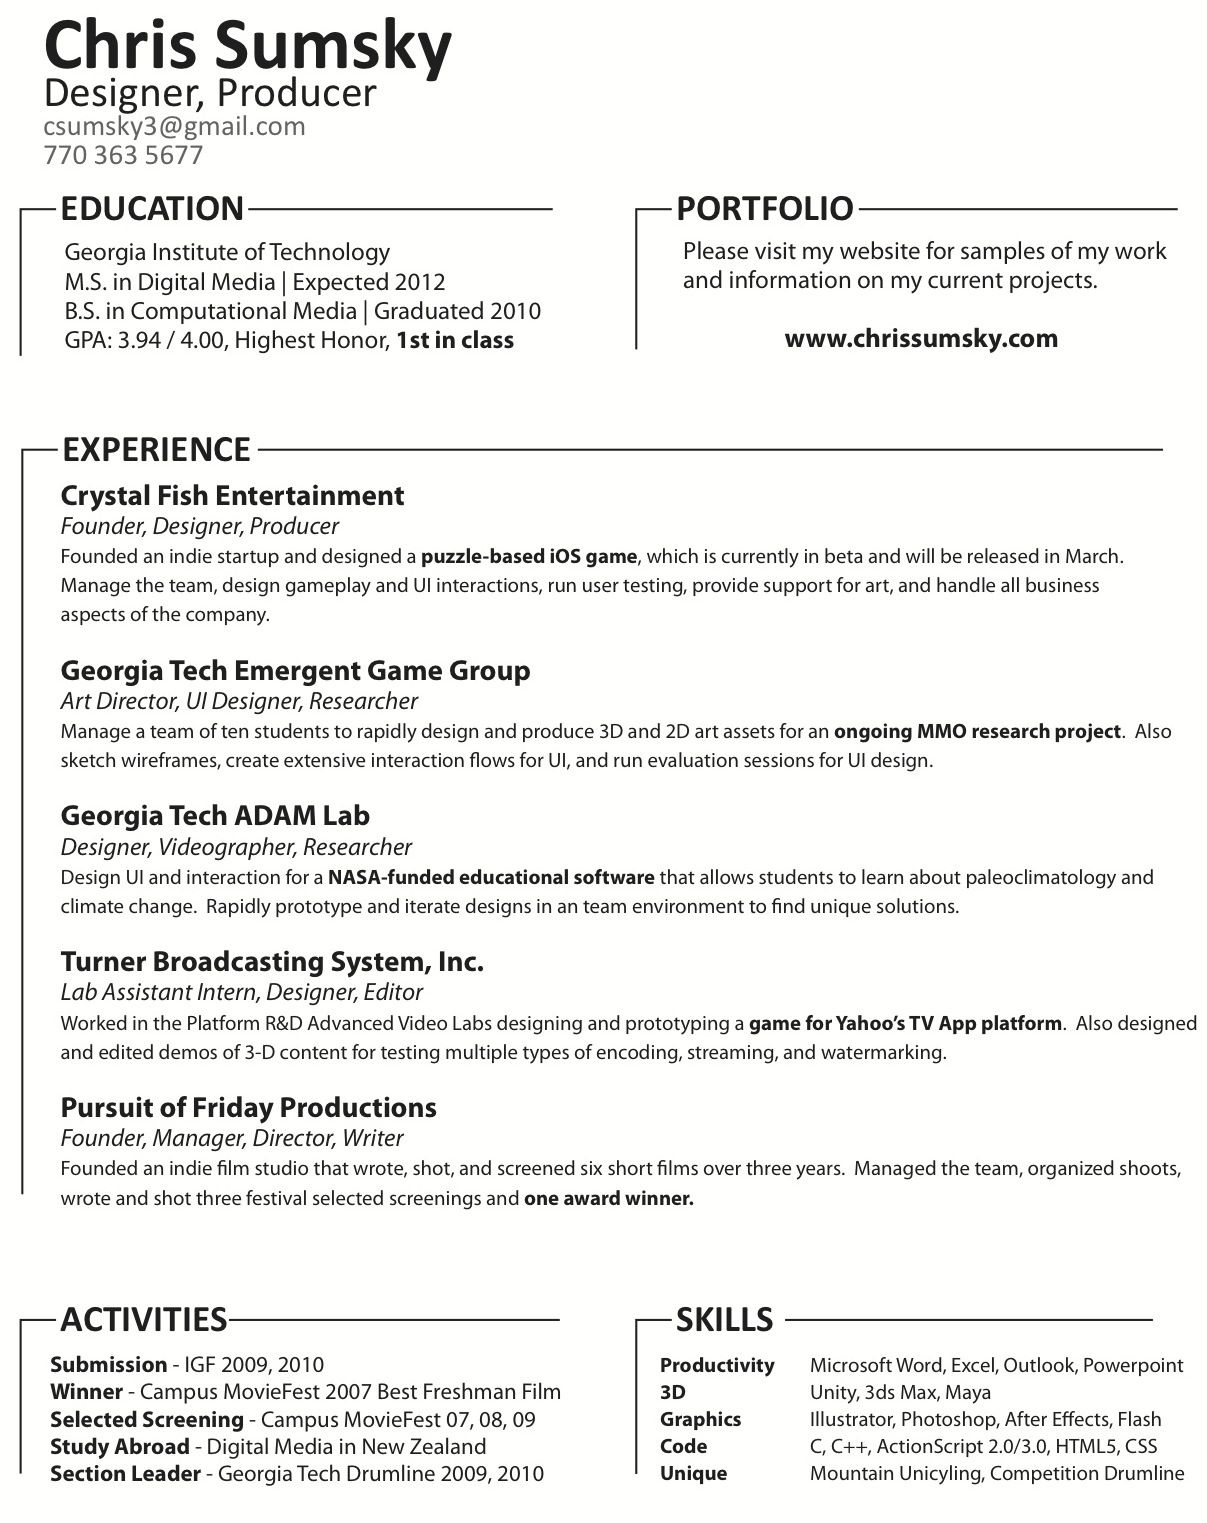 Http Www Chrissumsky Com Images Sumsky Resume Jpg With Images